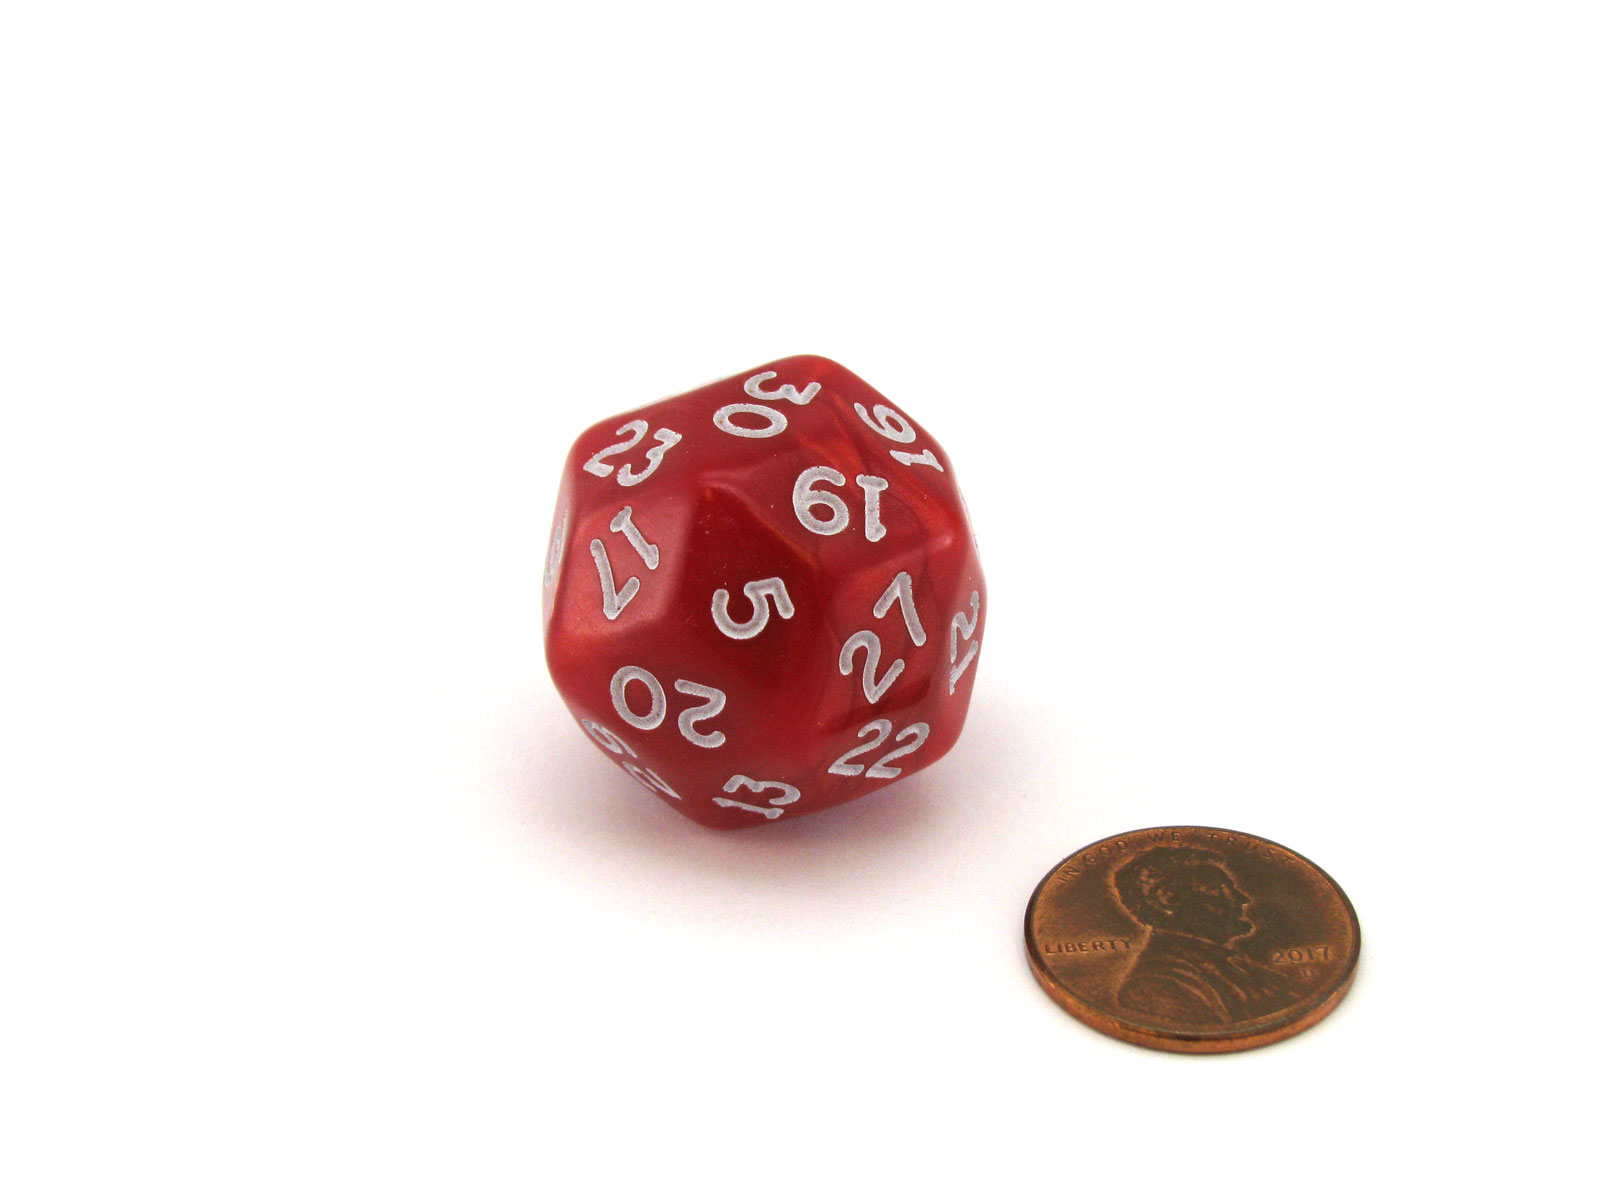 Pearlescent Triantakohedron D30 30 Sided 25mm Chessex Dice - Red with White